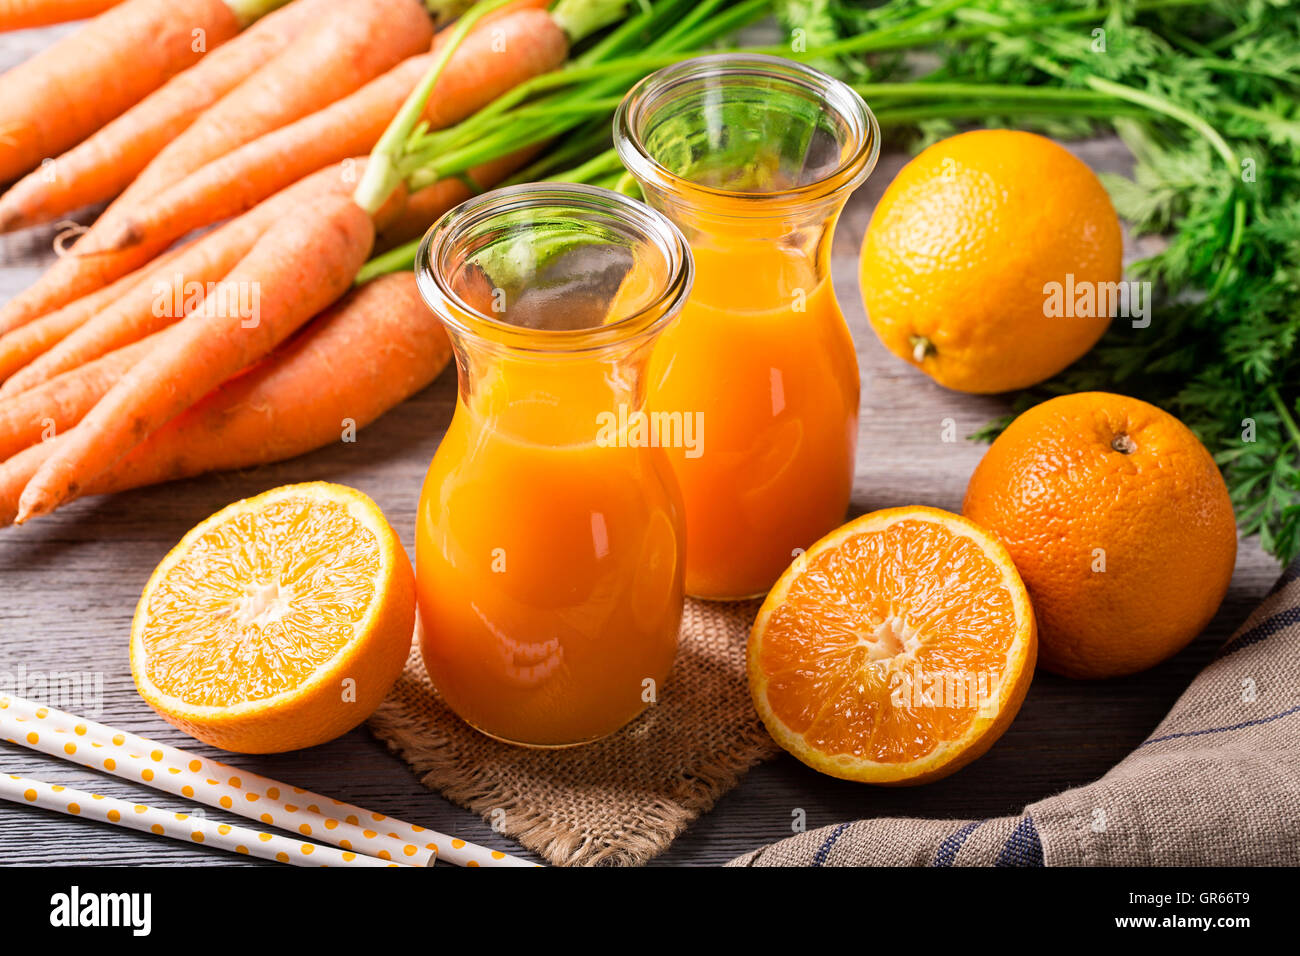 Carotte jus d'orange sur fond de bois Photo Stock